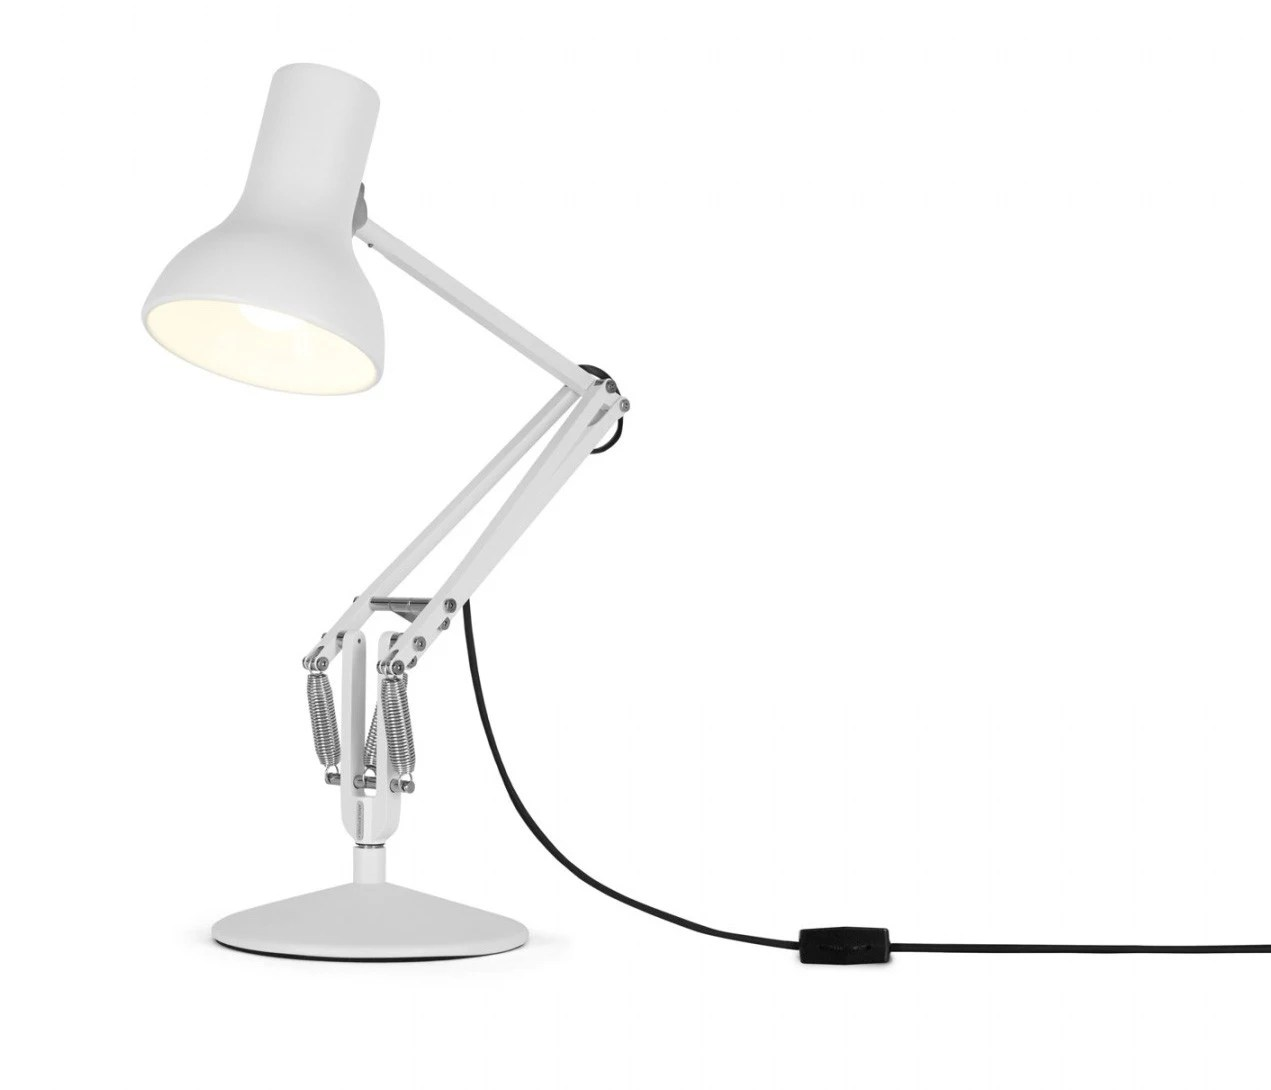 Anglepoise Lamp Anglepoise Type 75 Mini Desk Lamp Gr Shop Canada